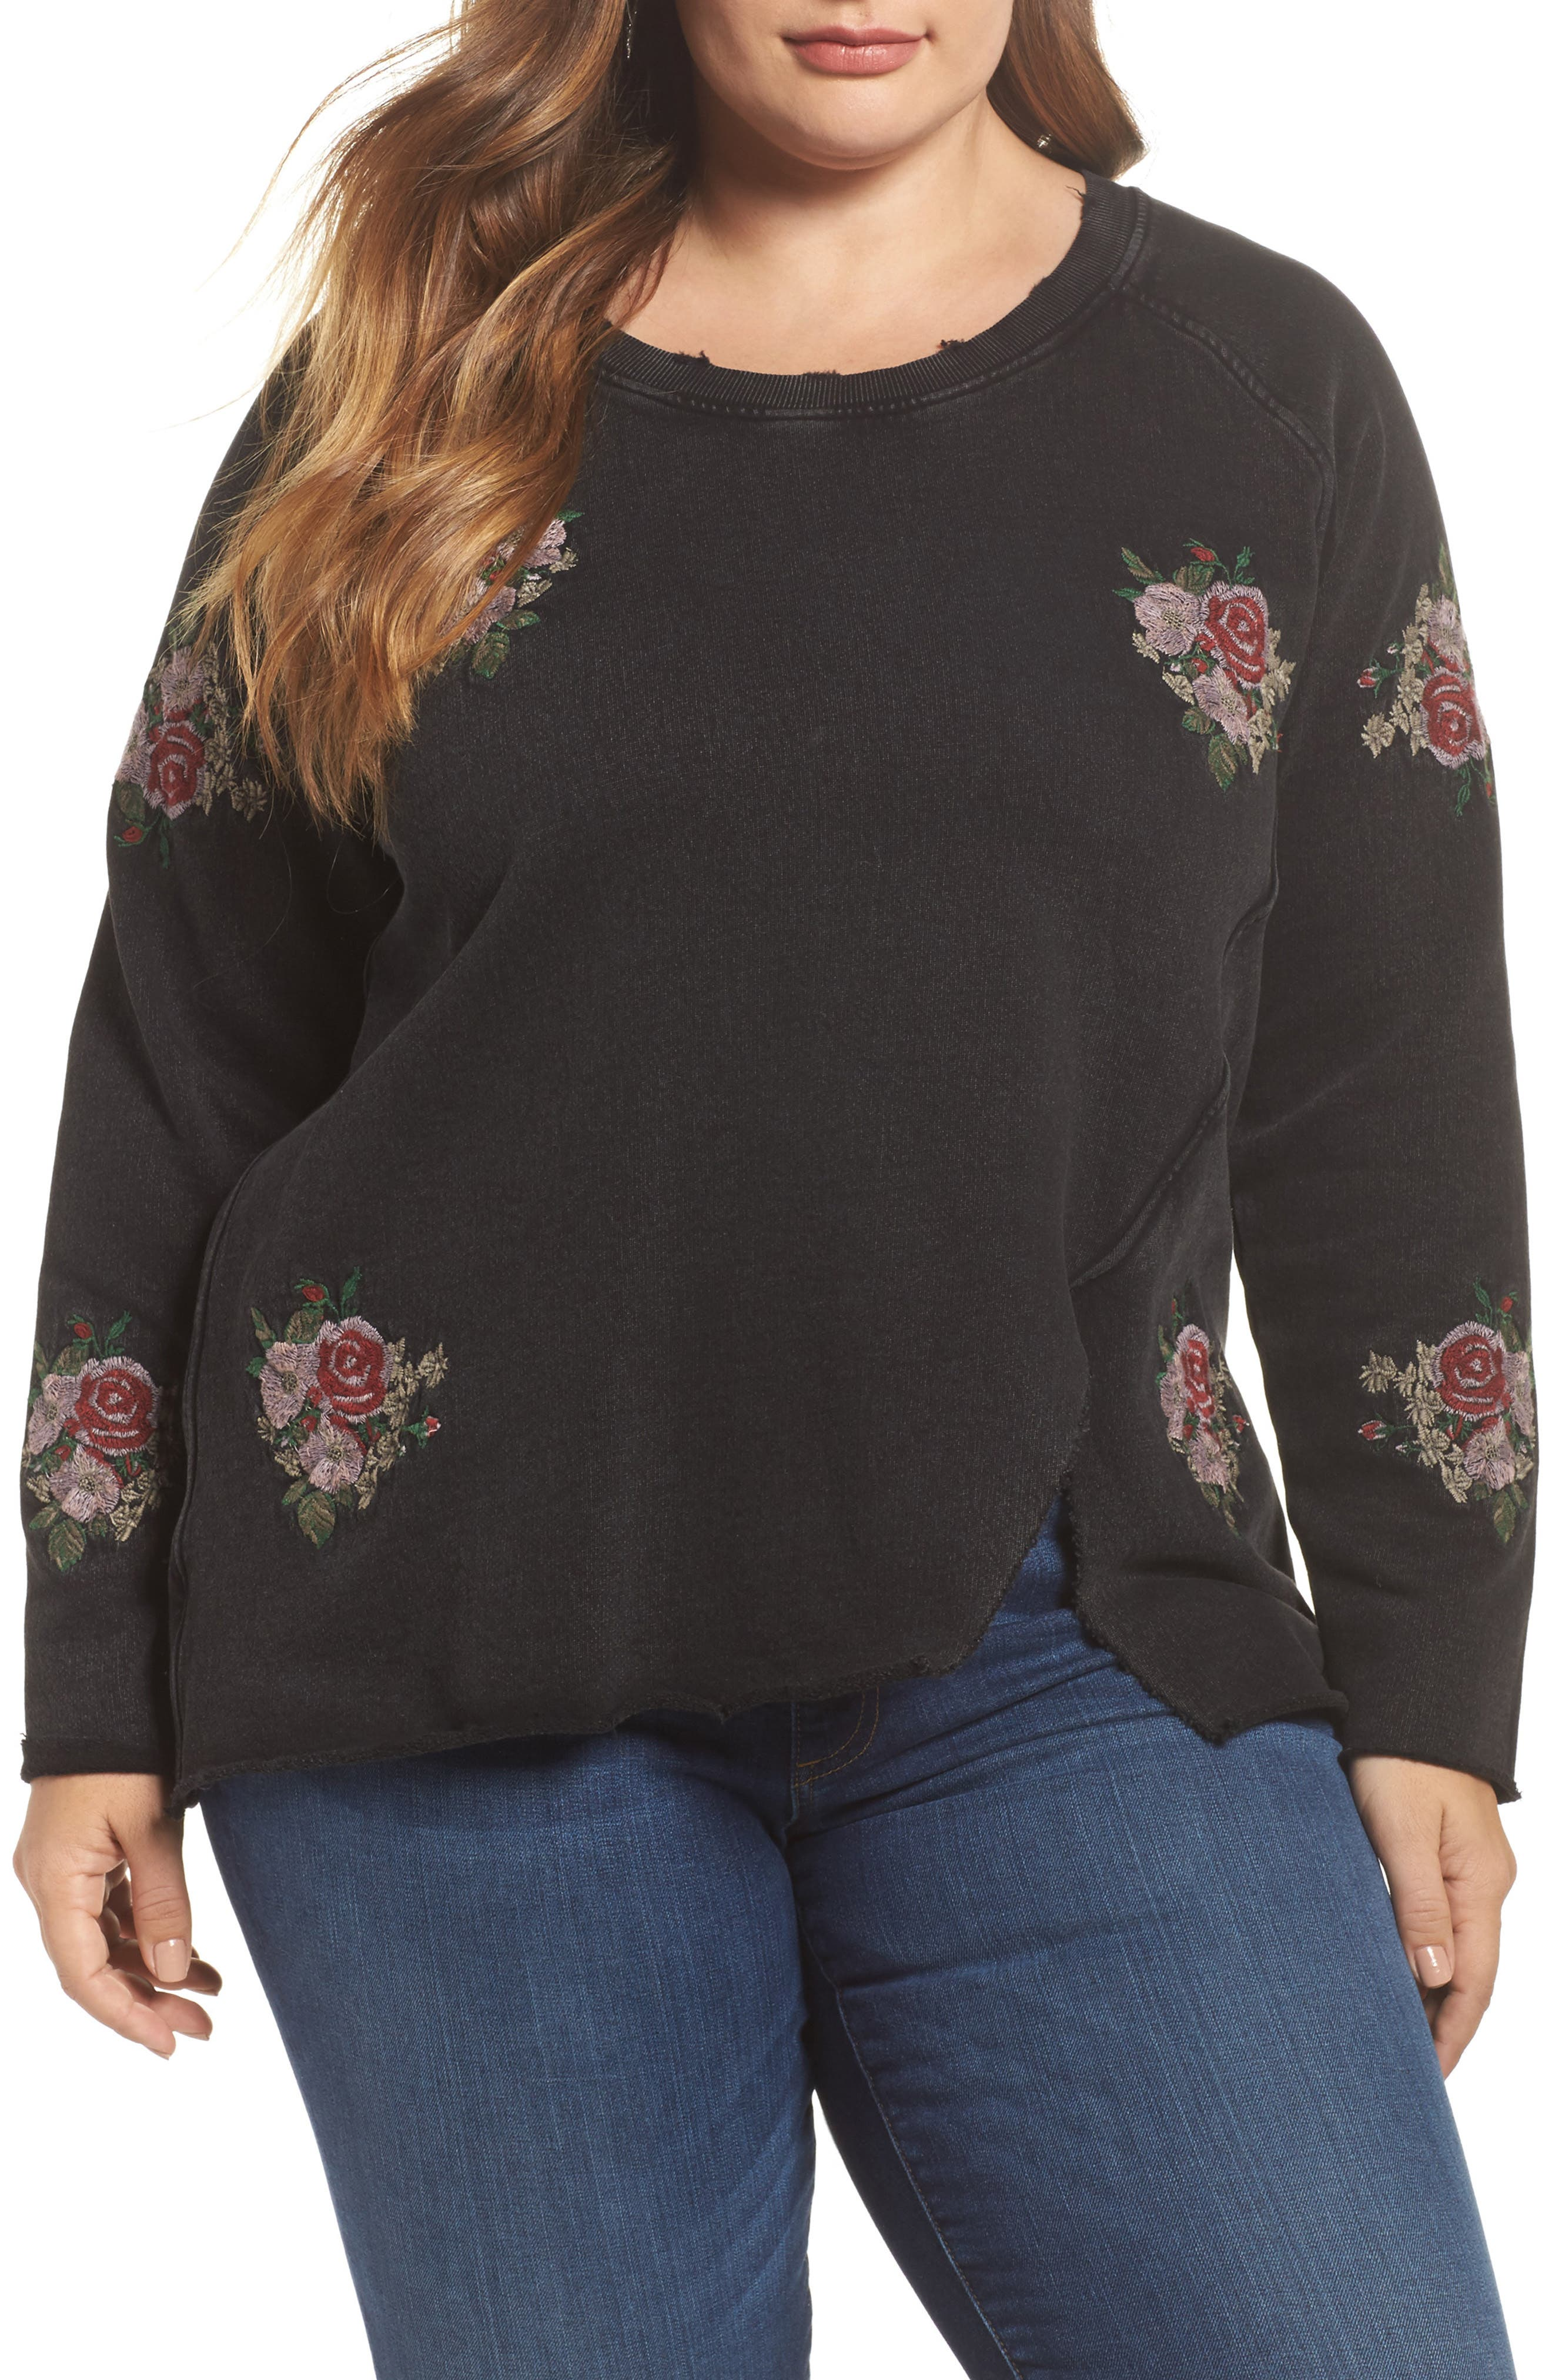 Main Image - Lucky Brand Embroidered Distressed Sweatshirt (Plus Size)